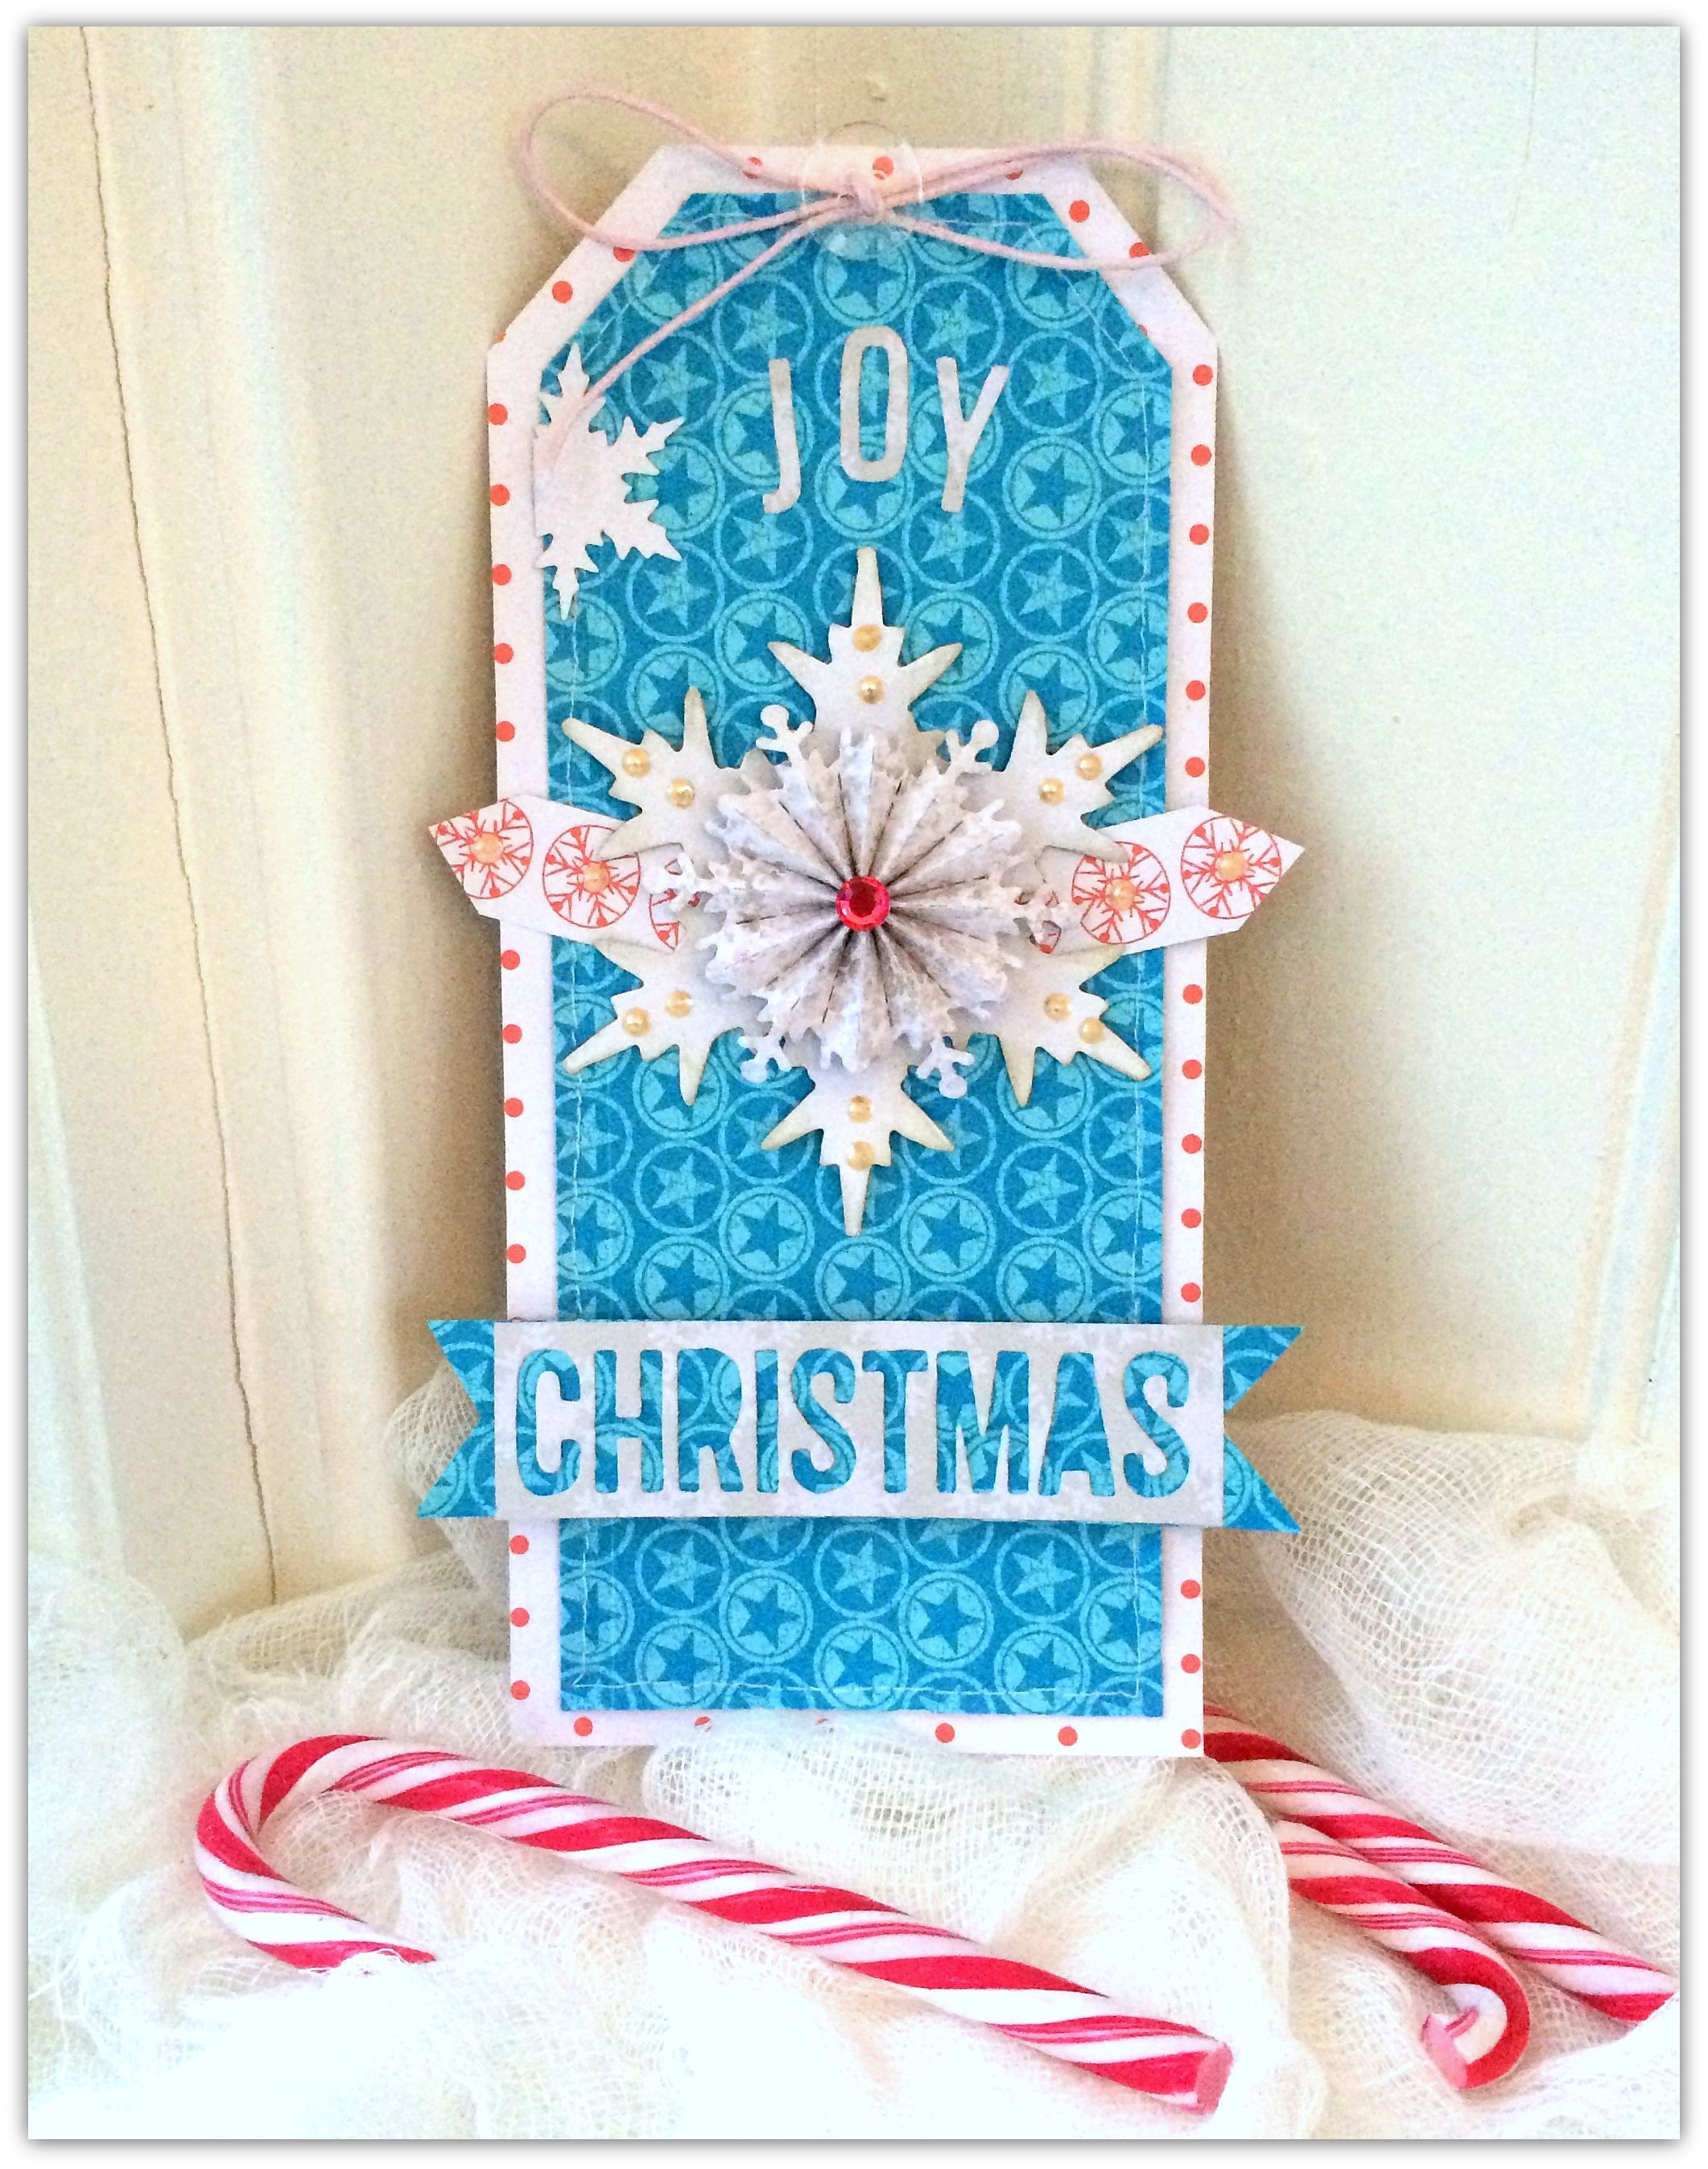 'Sizzix Winter Challenge 2014' week 1 - Scrapbook.com - Make your own gift tags with Sizzix dies.